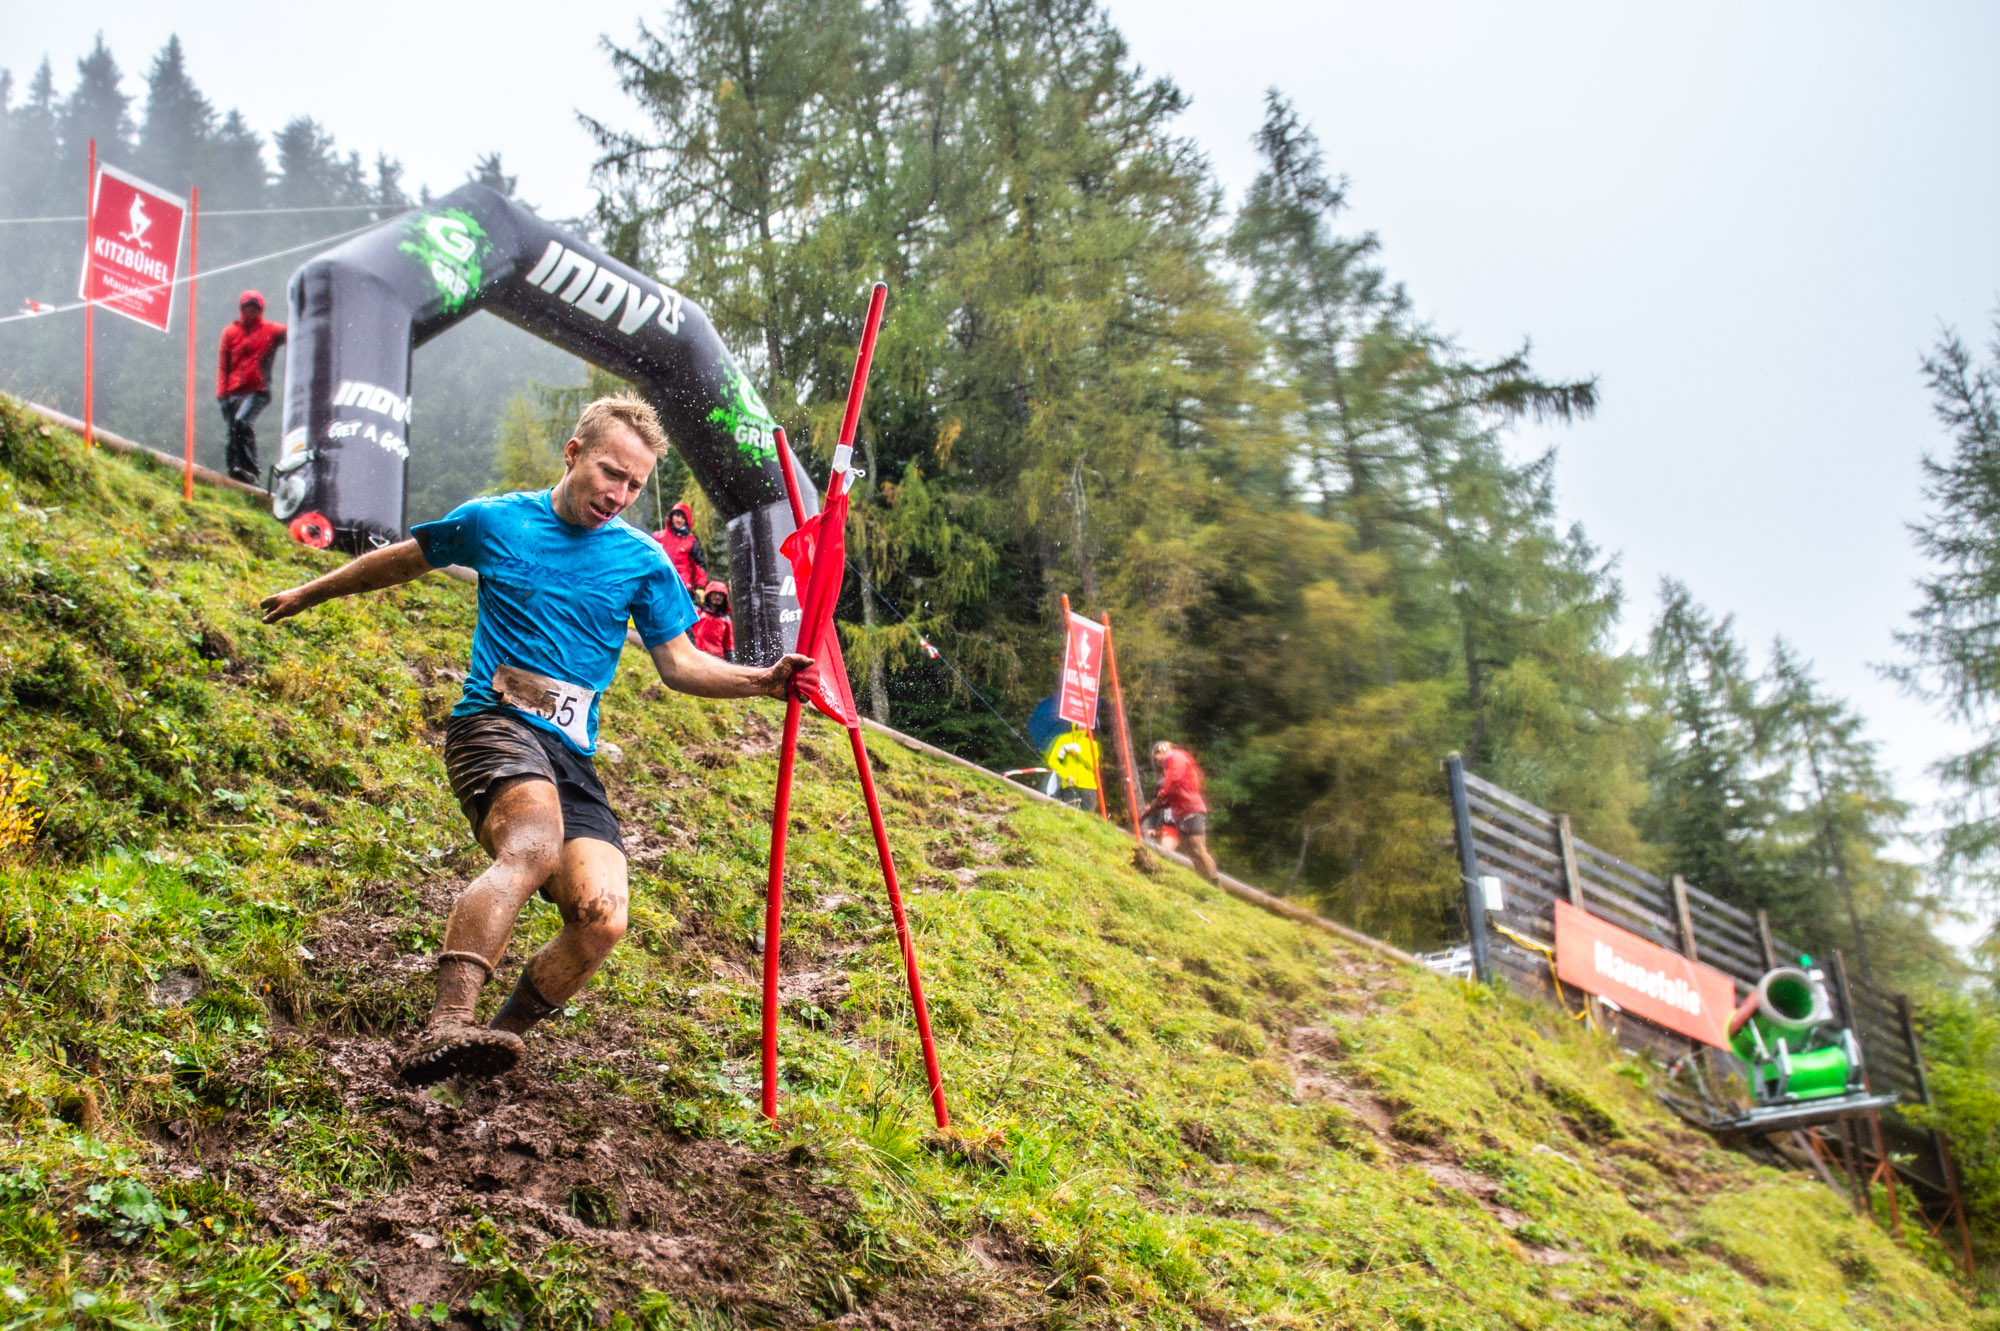 The rain and mud added an extra element of risk for daredevil competitors at the Inov-8 Descent Race in Austria last weekend (credit: Michael Werlberger)